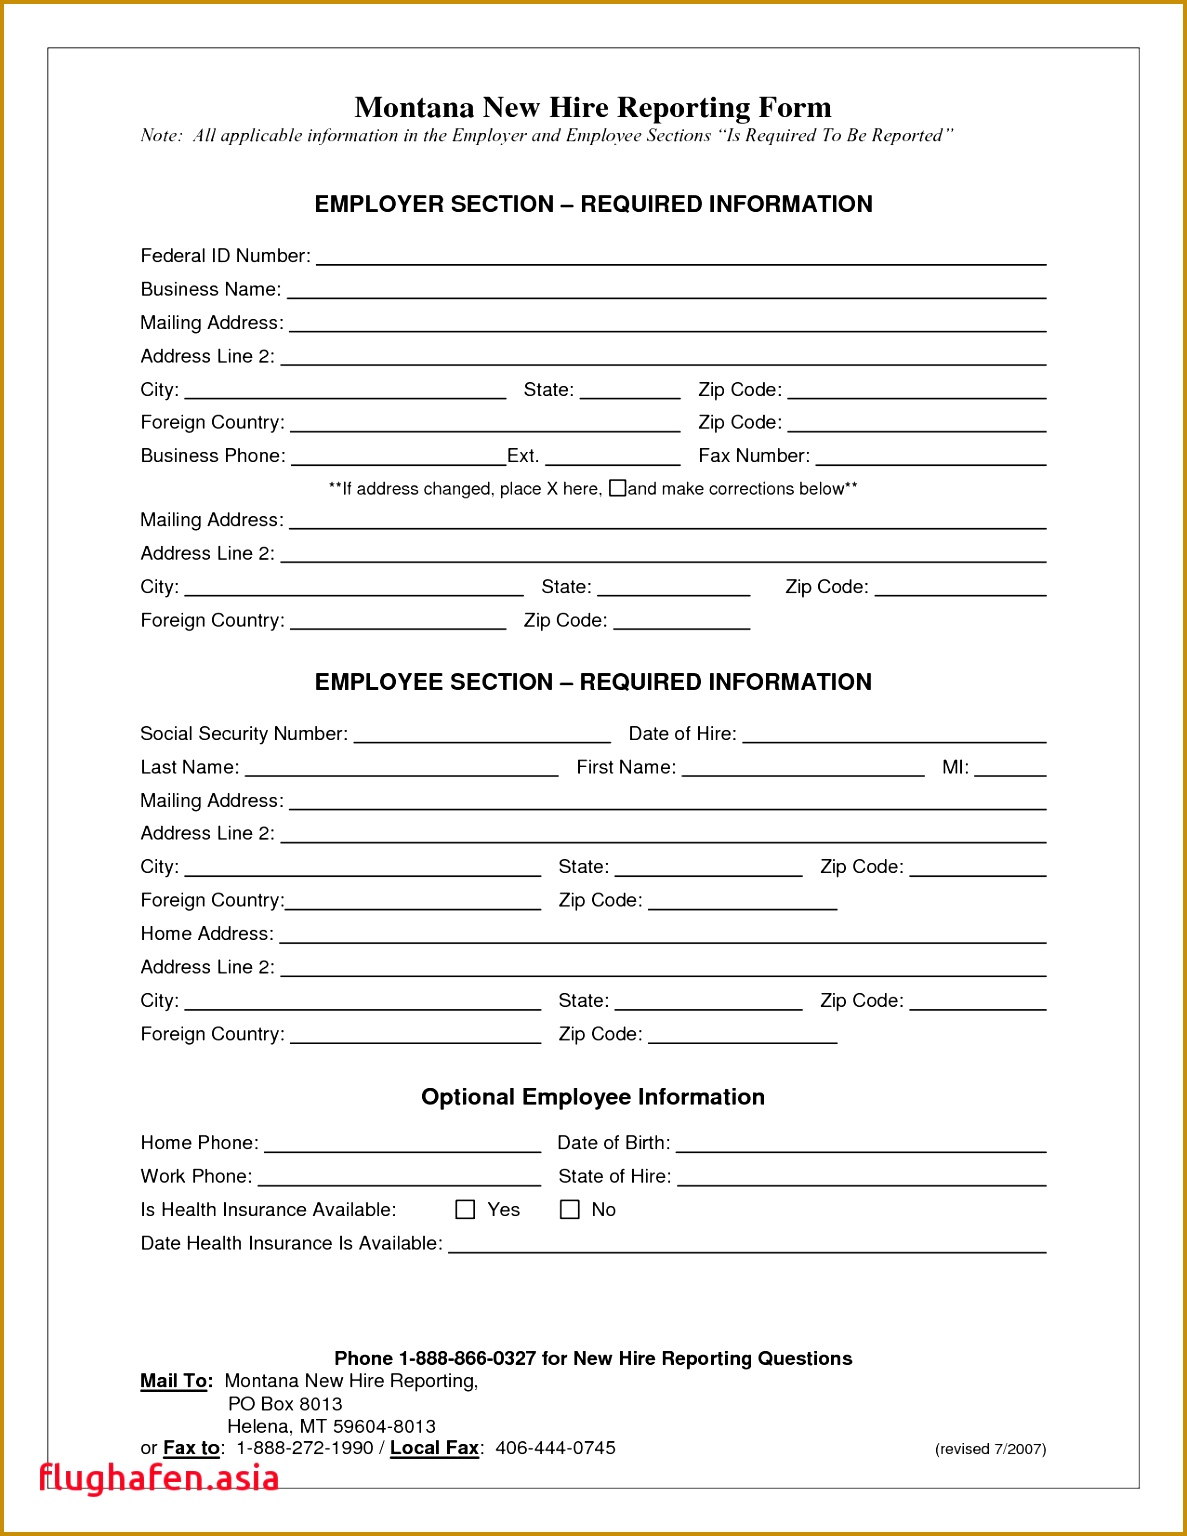 Business Application Form Template Rental Applications Template Free Business Credit Application Form Template Fresh 6 New Hire Application Form 15361187